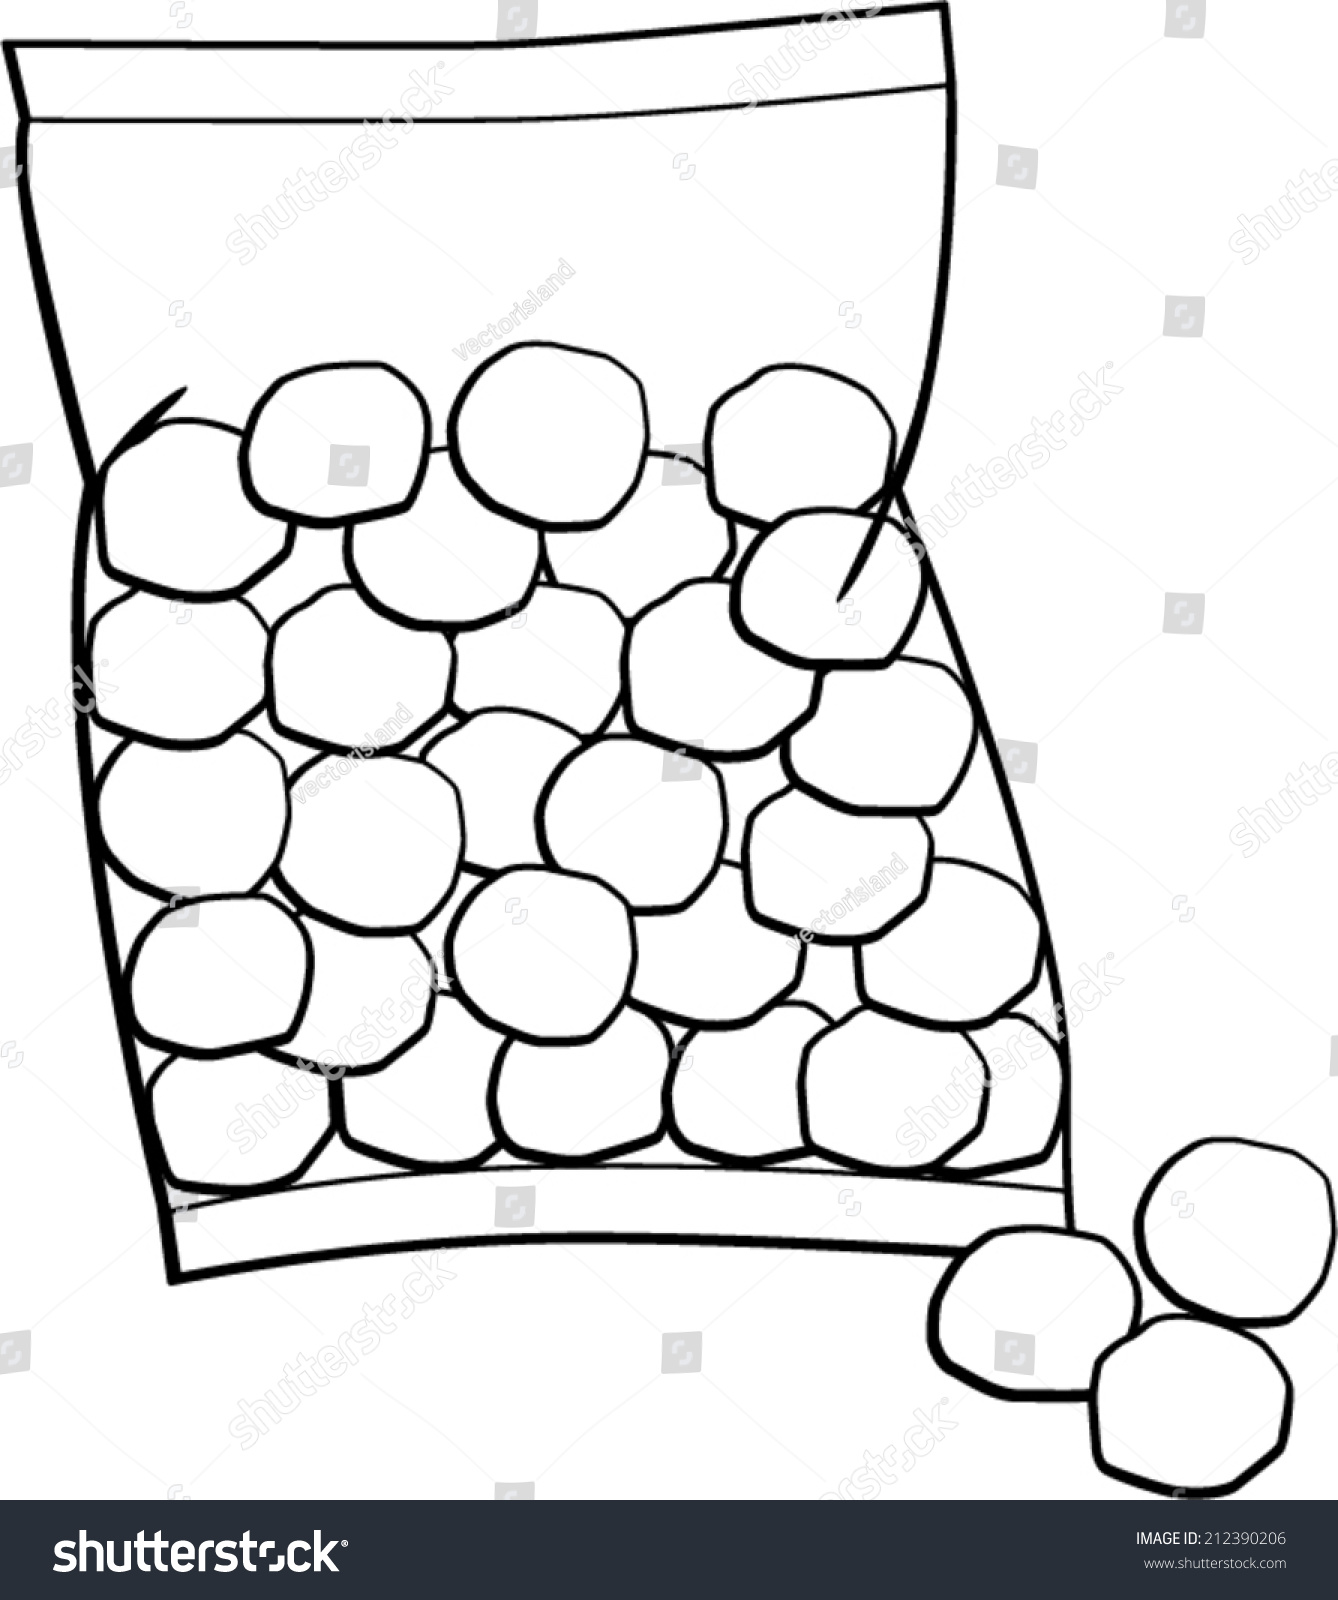 Cotton Balls Bag Stock Vector 212390206 - Shutterstock